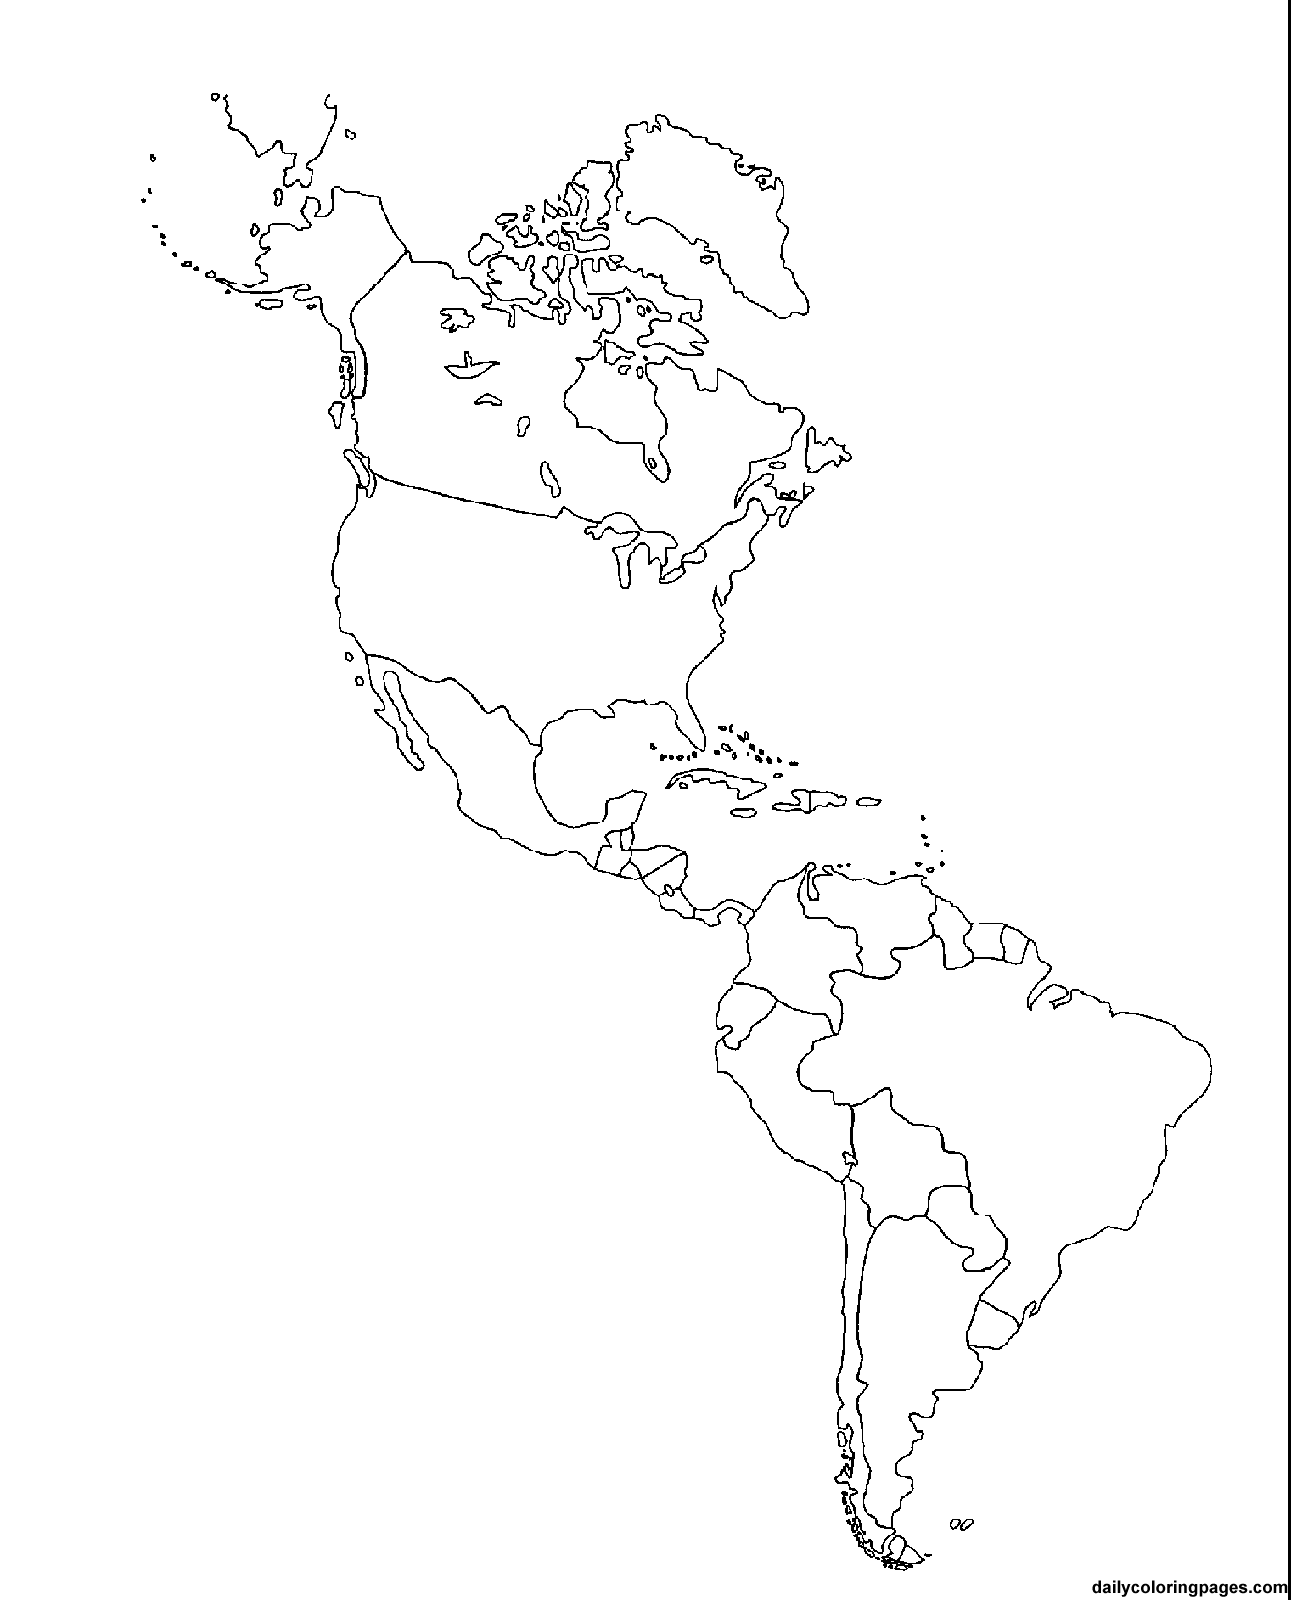 south america map coloring page south america coloring pages kidsuki south coloring map america page